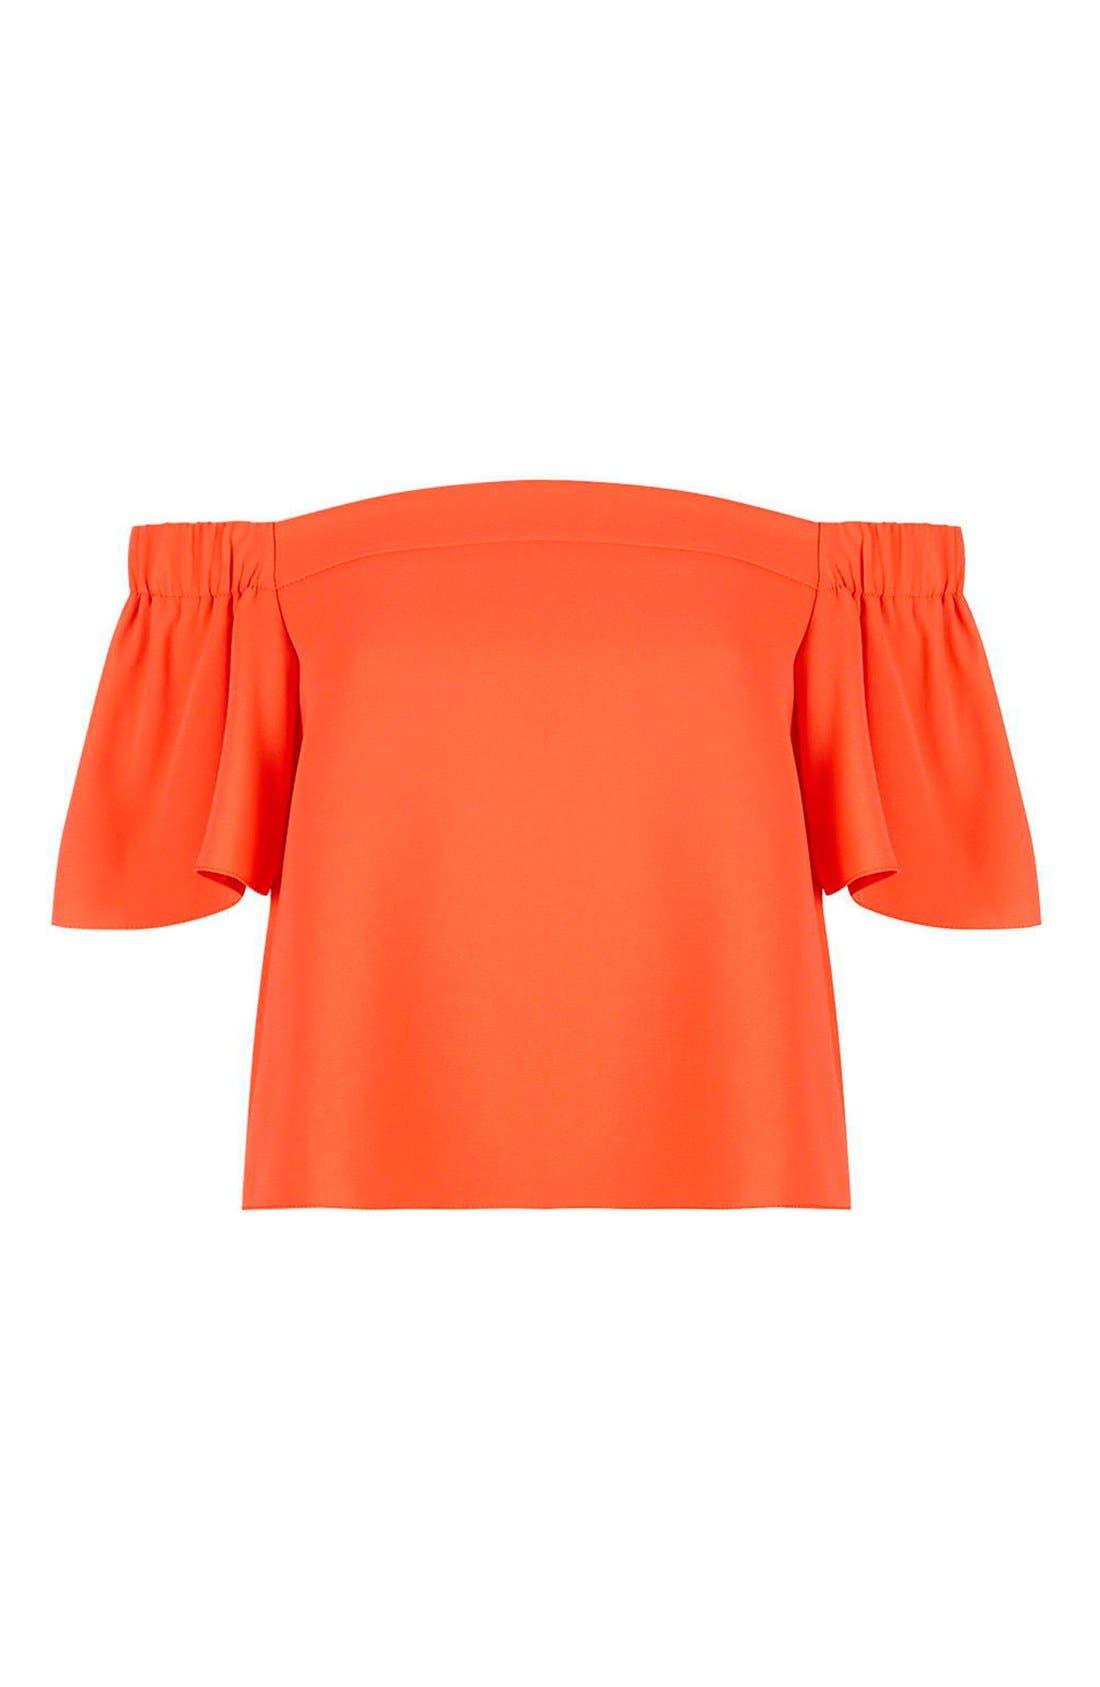 'Livi' Off the Shoulder Top,                             Alternate thumbnail 11, color,